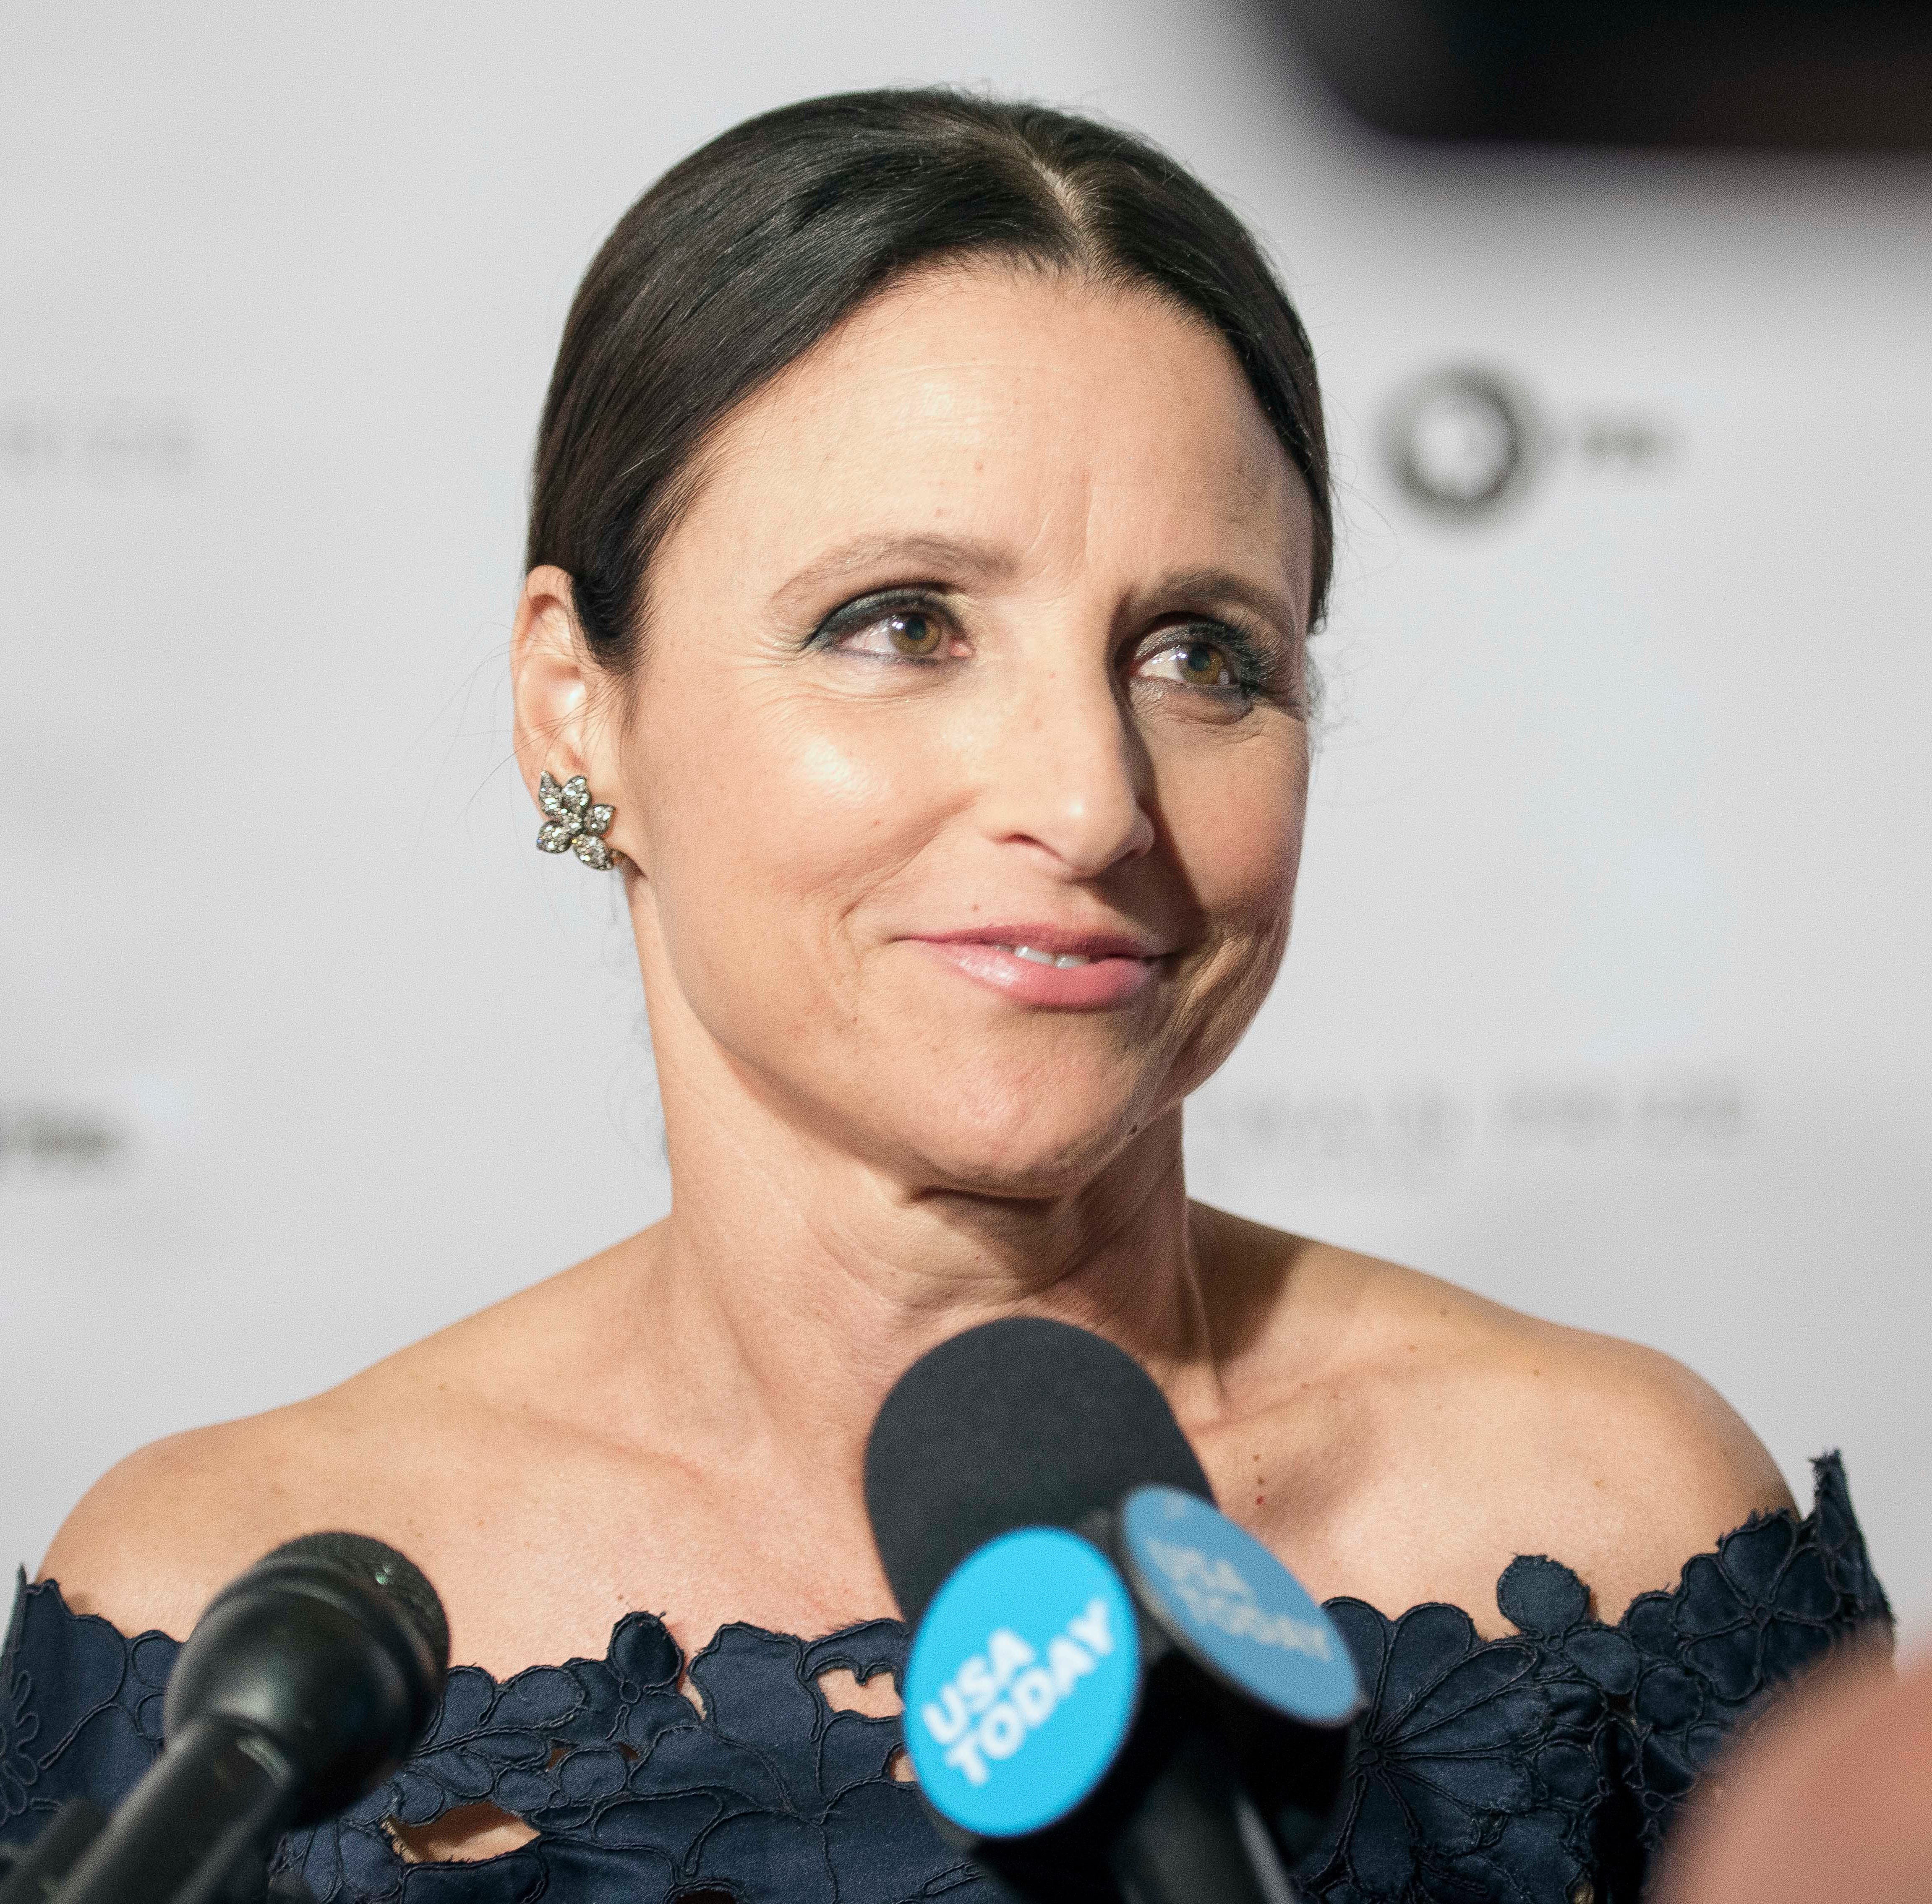 Julia Louis-Dreyfus received the Mark Twain Prize for American Humor and a pretty good roasting by her fellow celebrities at the Kennedy Center in Washington, D.C., in October.